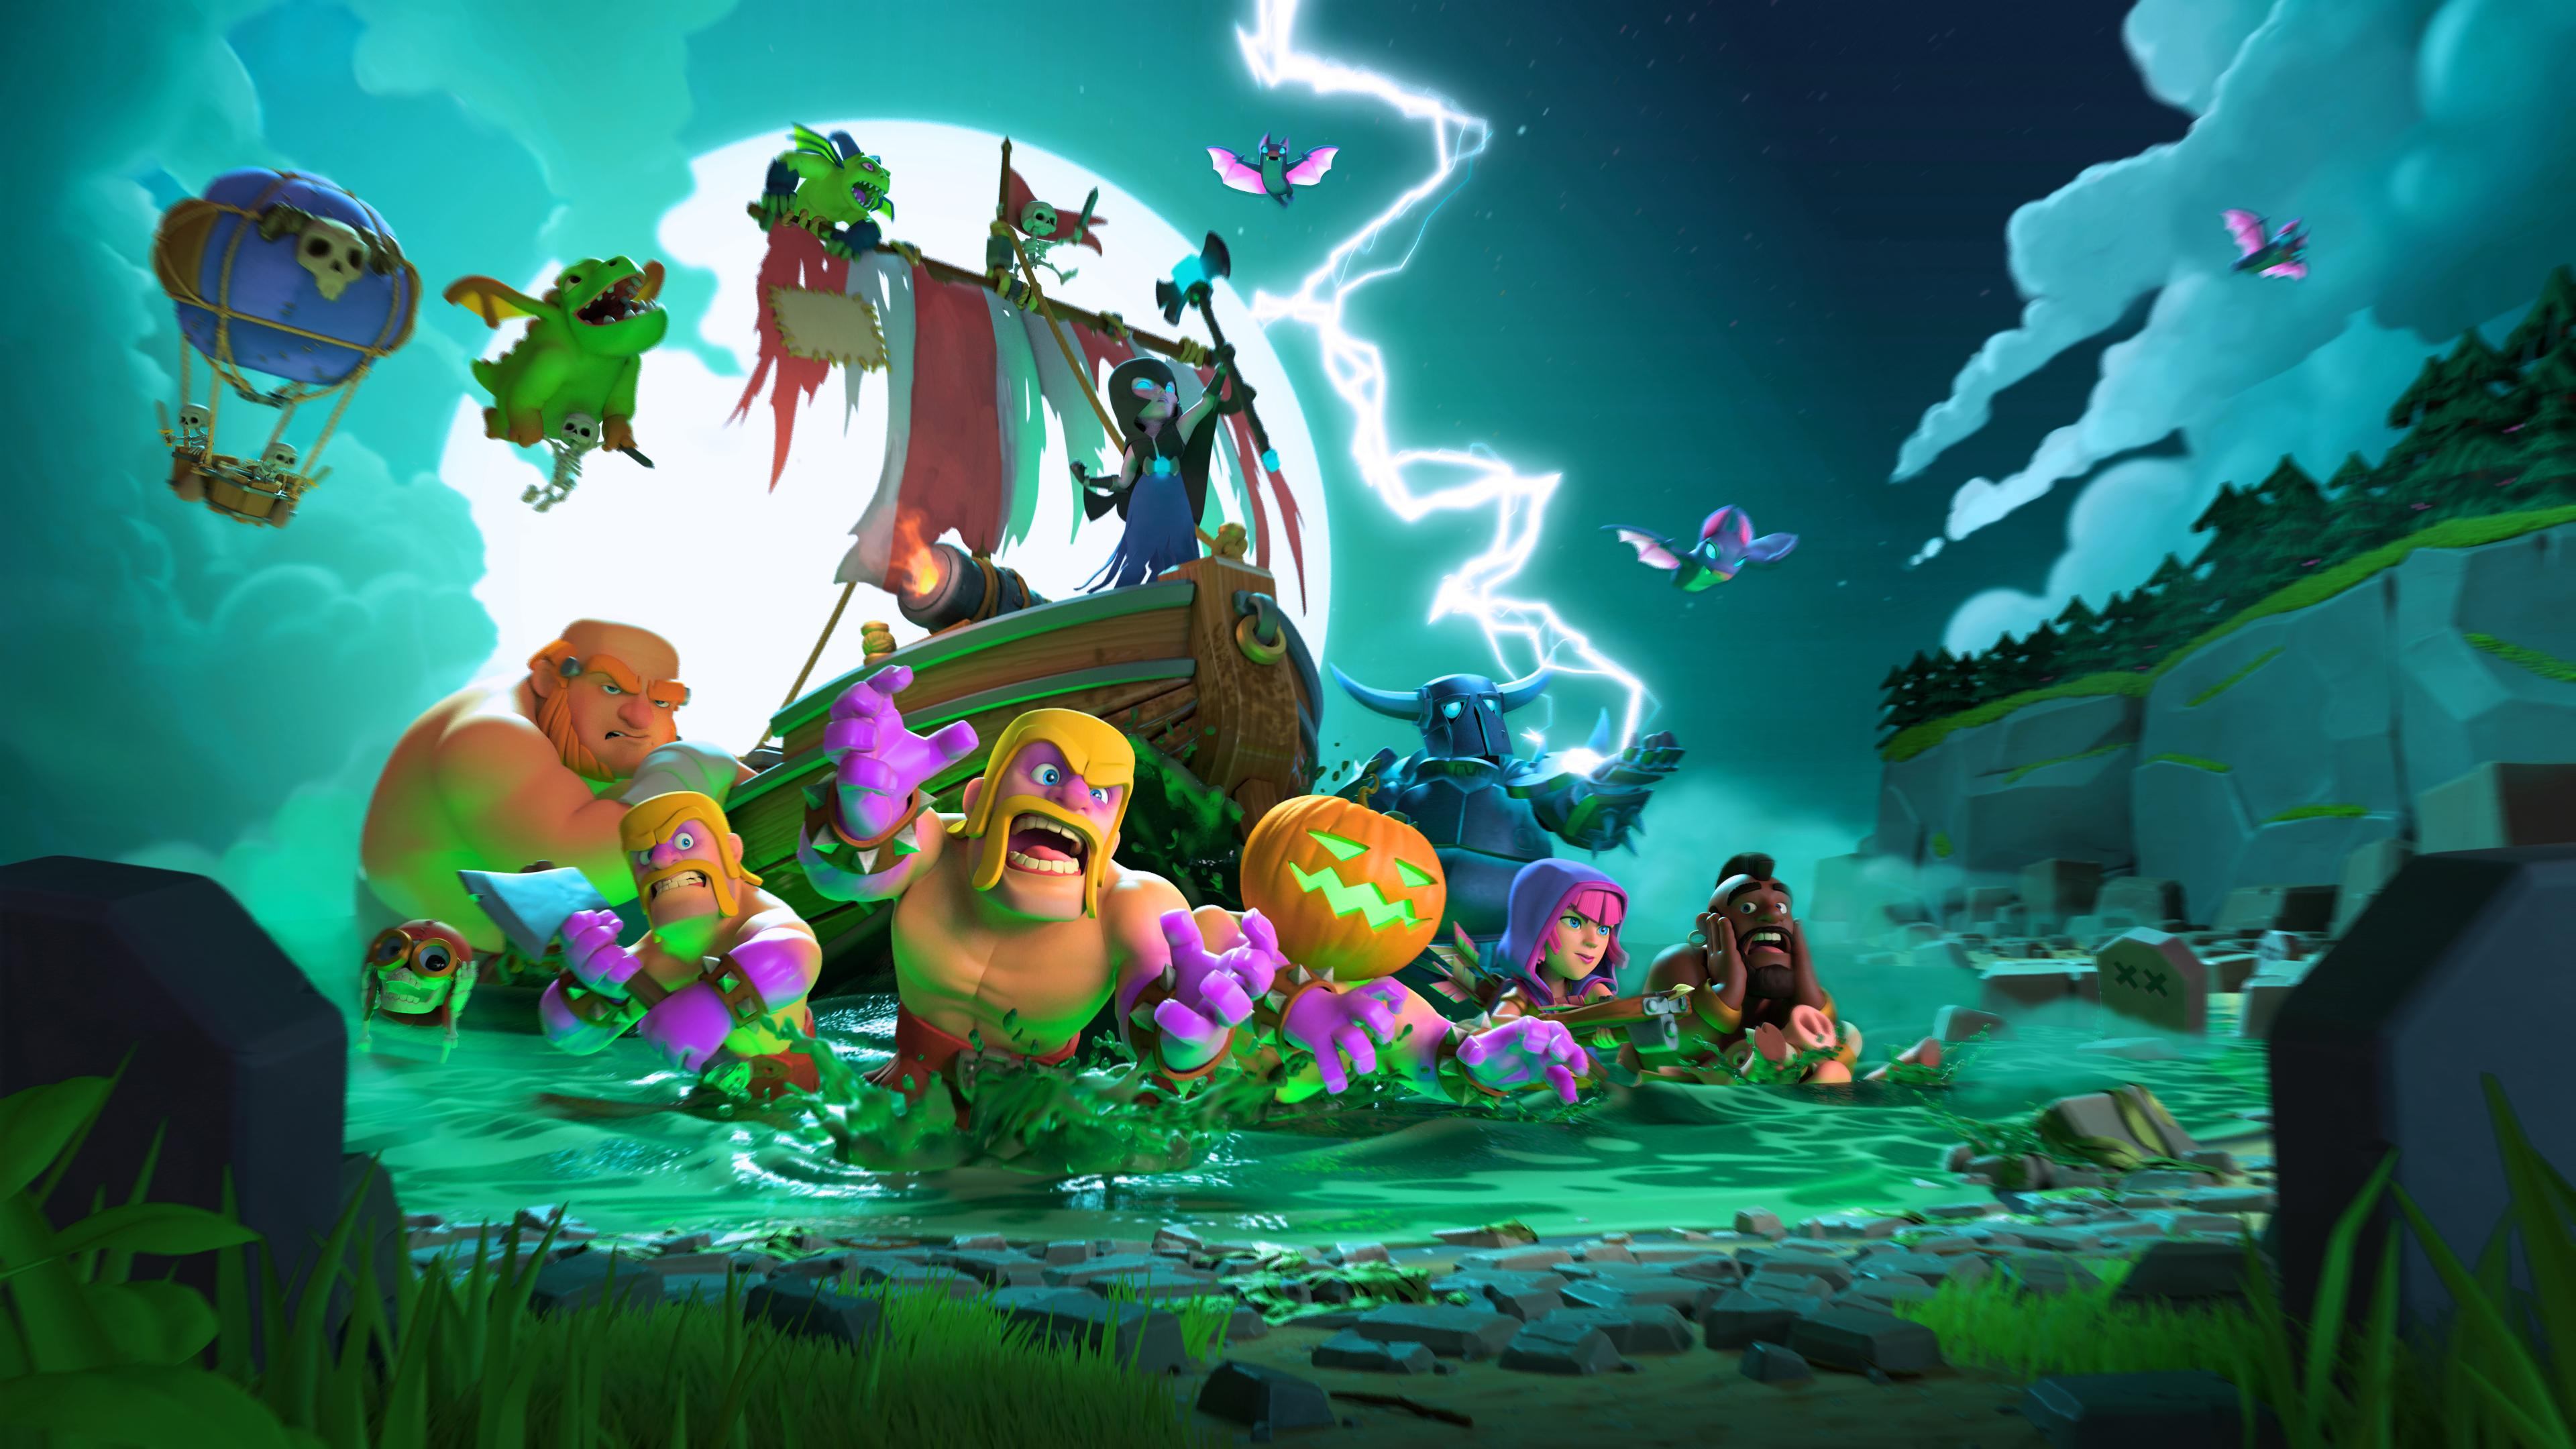 Barbarian Clash Of Clans Hd Hd Games 4k Wallpapers: Clash Of Clans Halloween 4k, HD Games, 4k Wallpapers